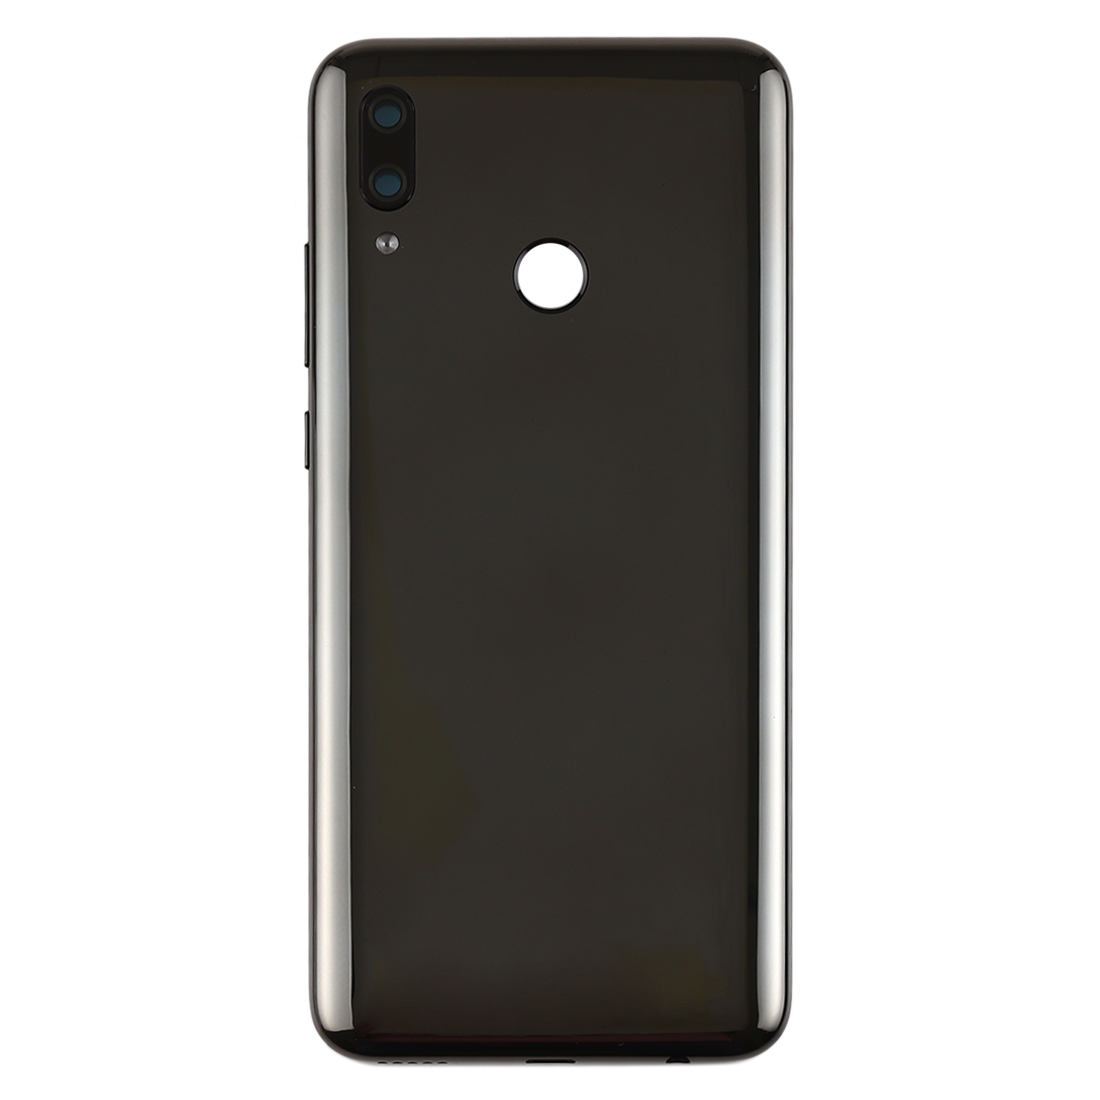 online store 3fc74 b6db9 Original Battery Back Cover with Camera Lens for Huawei P Smart (2019)  (Black)